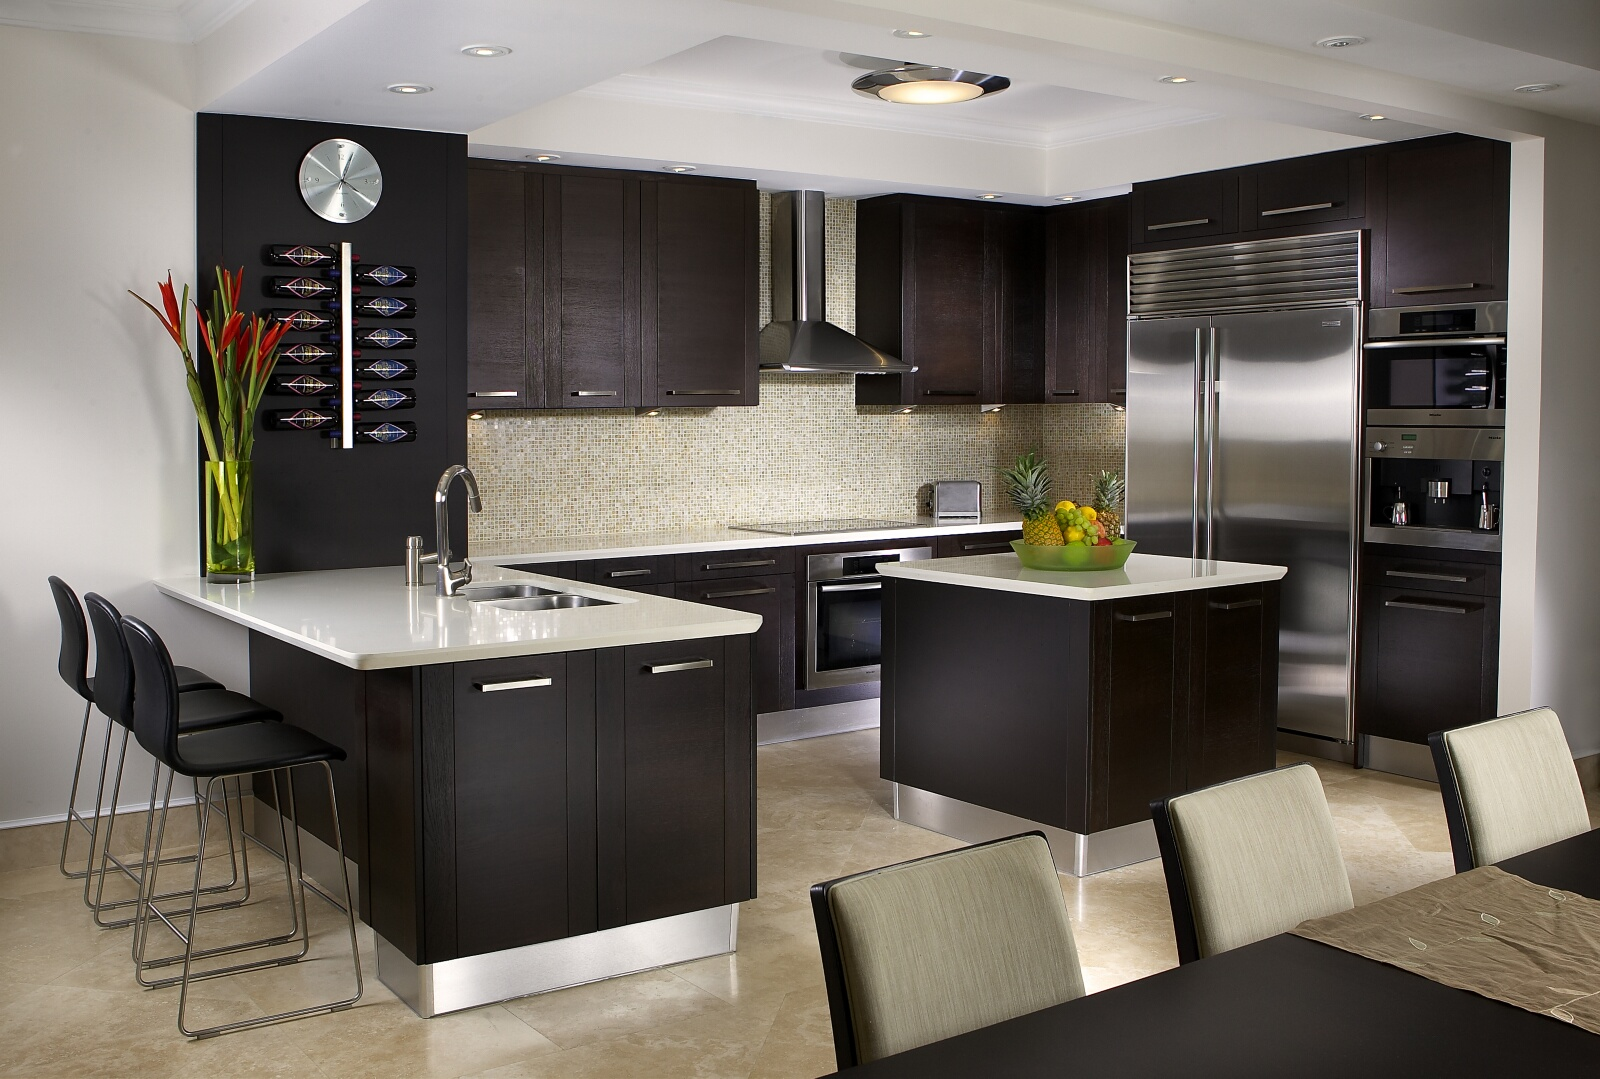 Kitchen Design Triangle kitchen interior design services miami florida